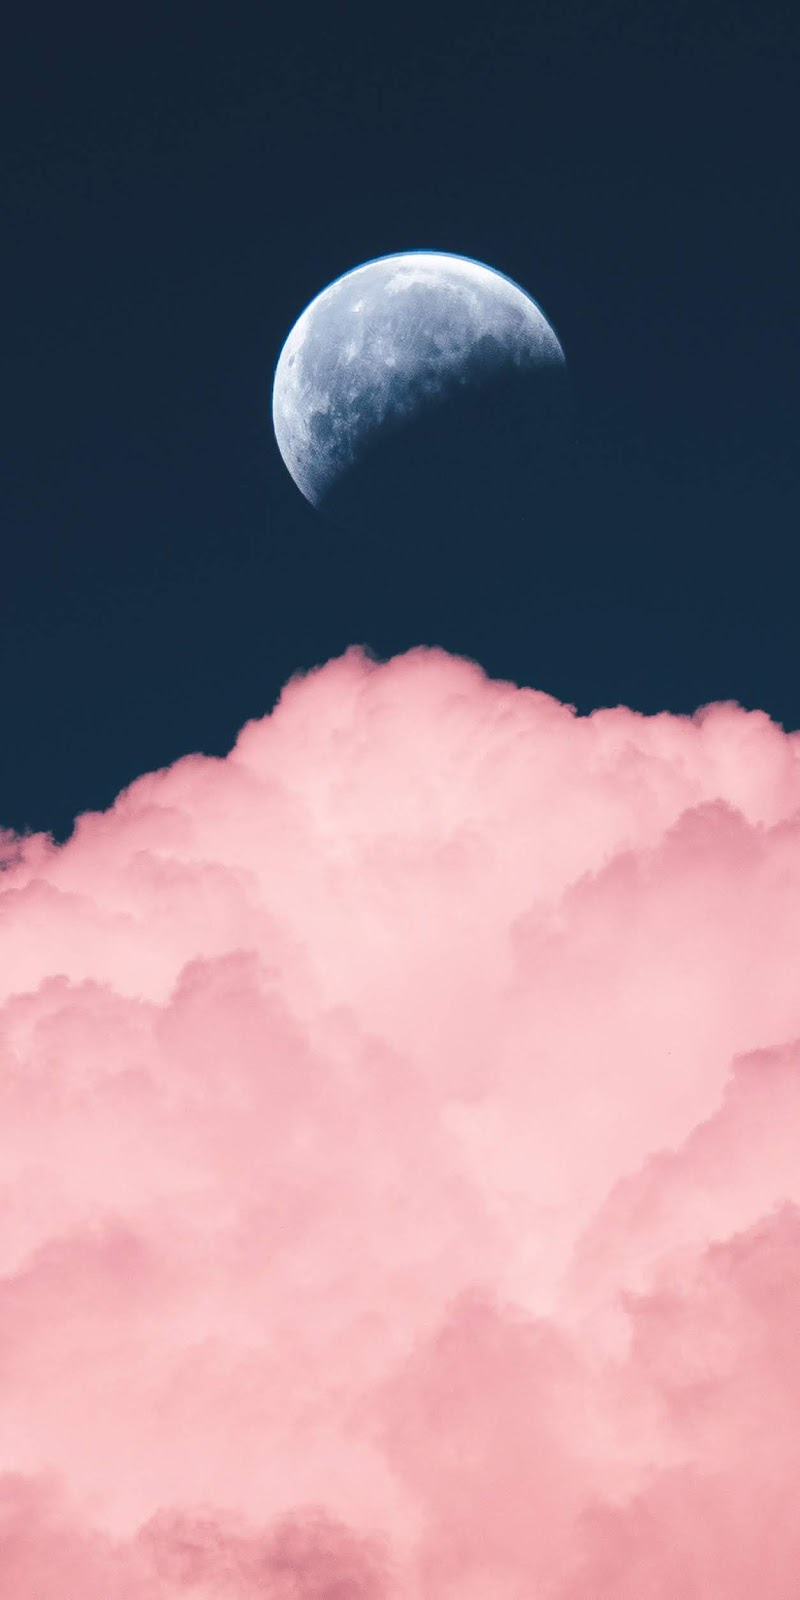 Moon in the pink clouds